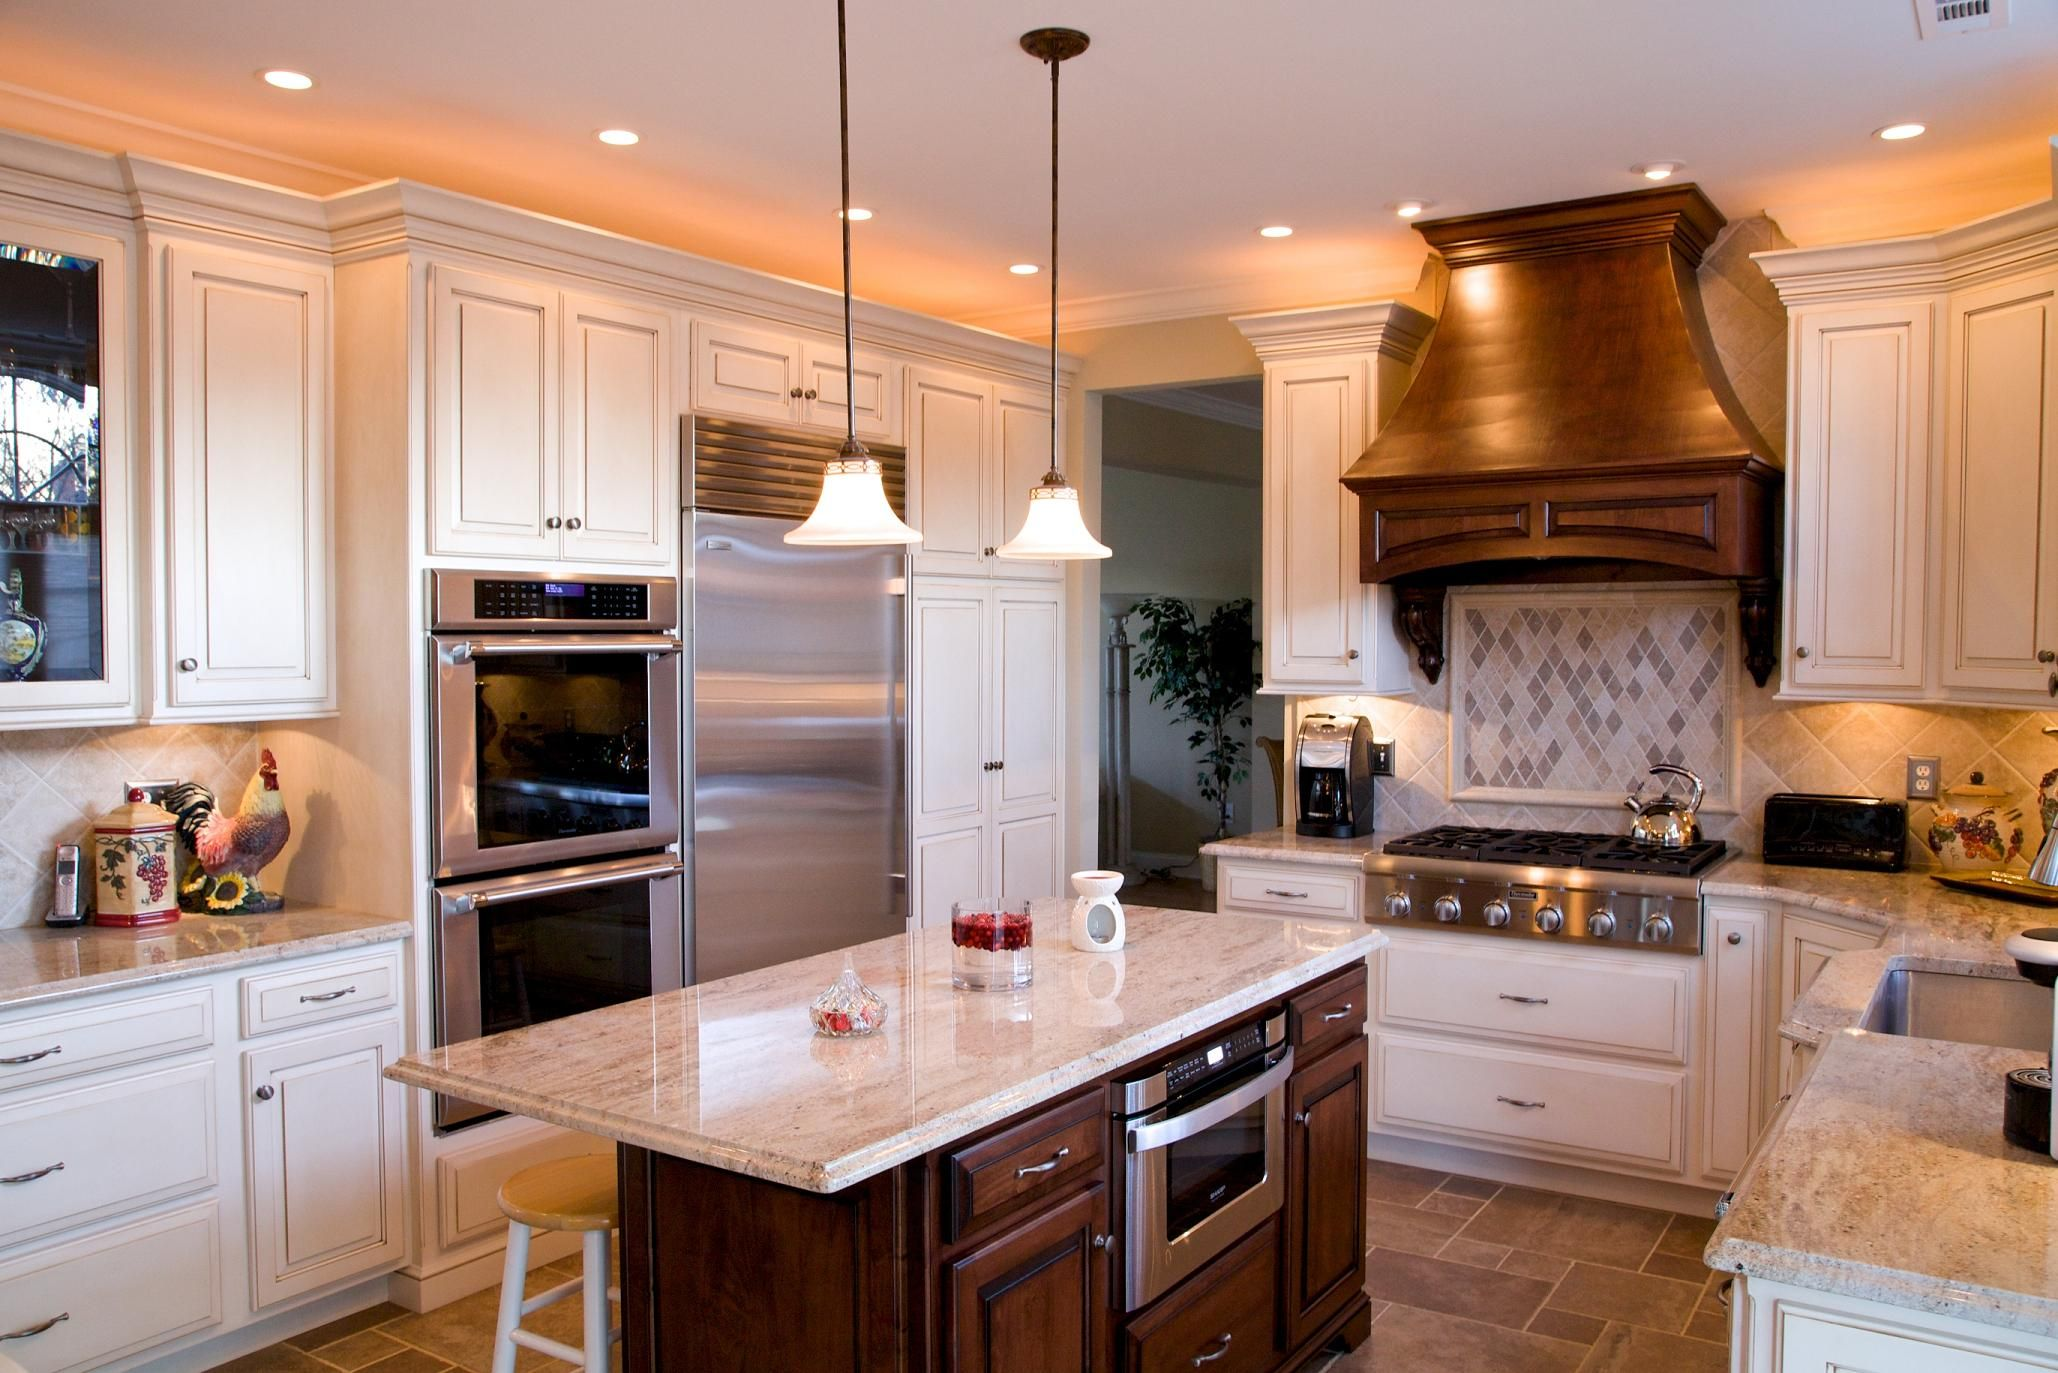 Kashmir Gold Granite Countertops With Cream Cabinets. Kitchen By Stoneshop  From Cherry Hill, NJ